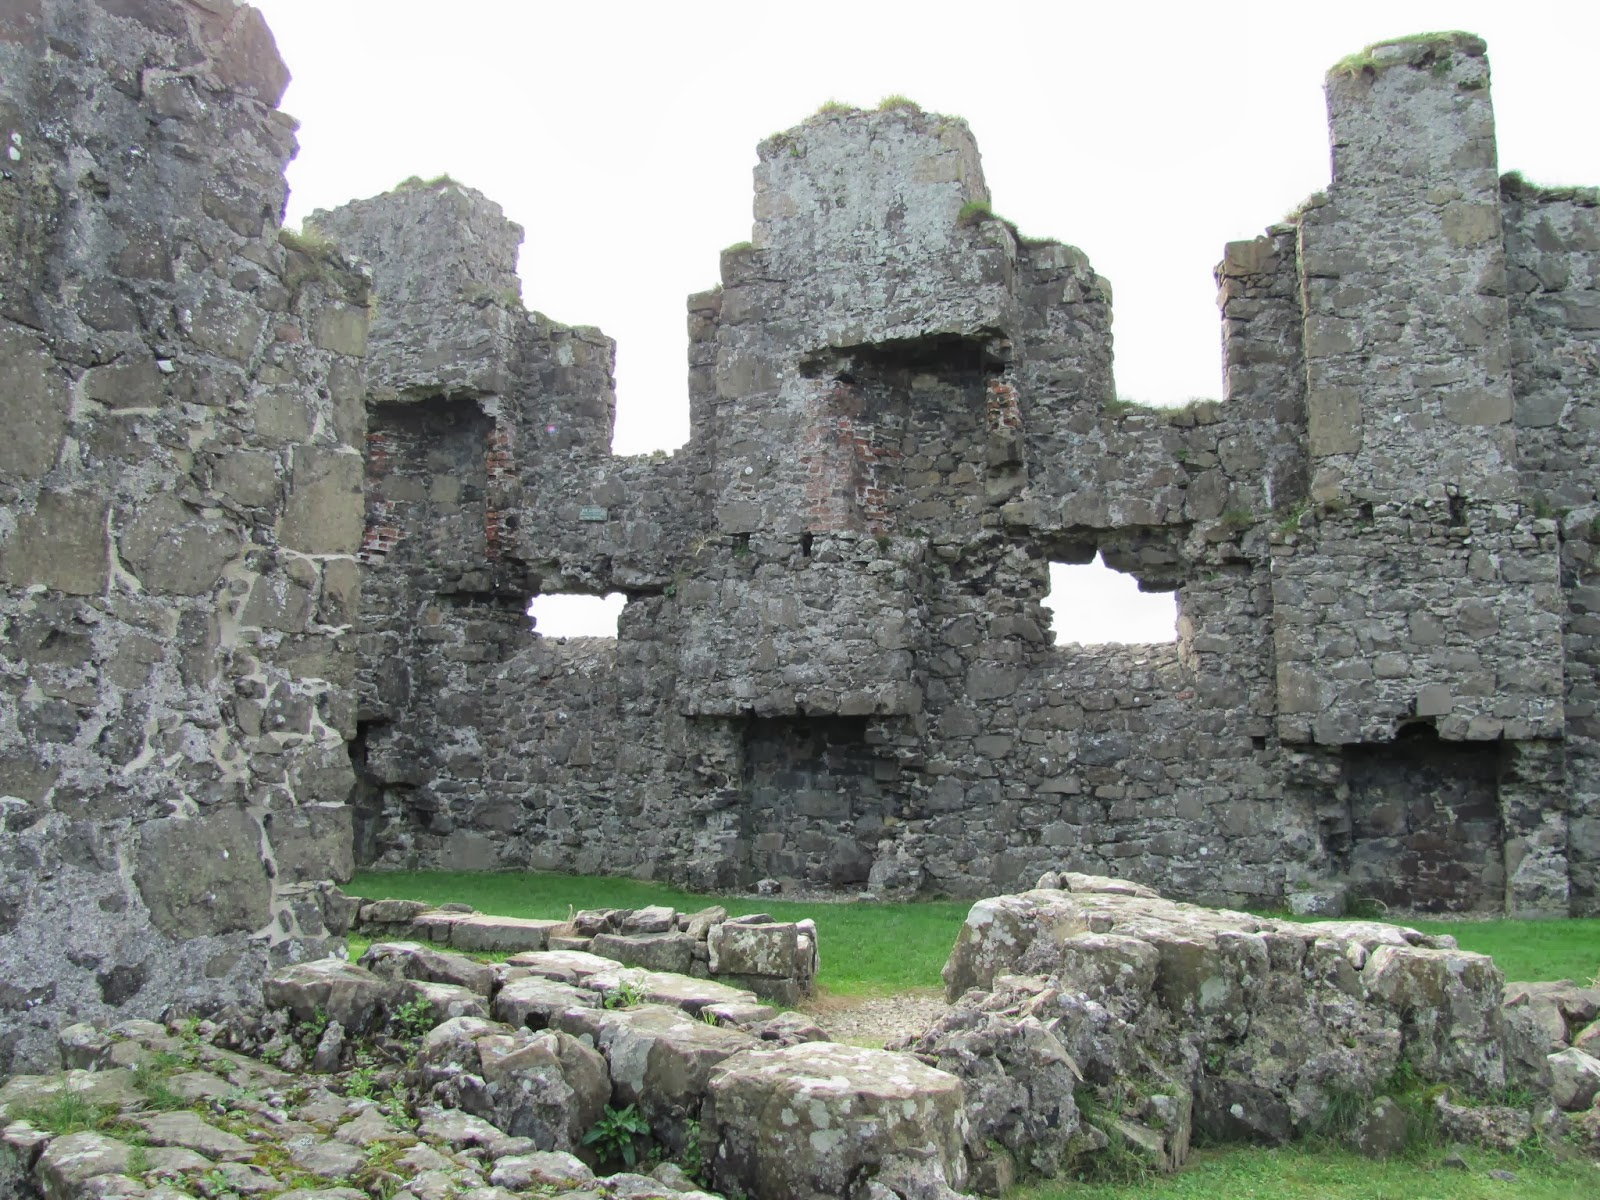 The ruined walls and floor of Dunluce Castle